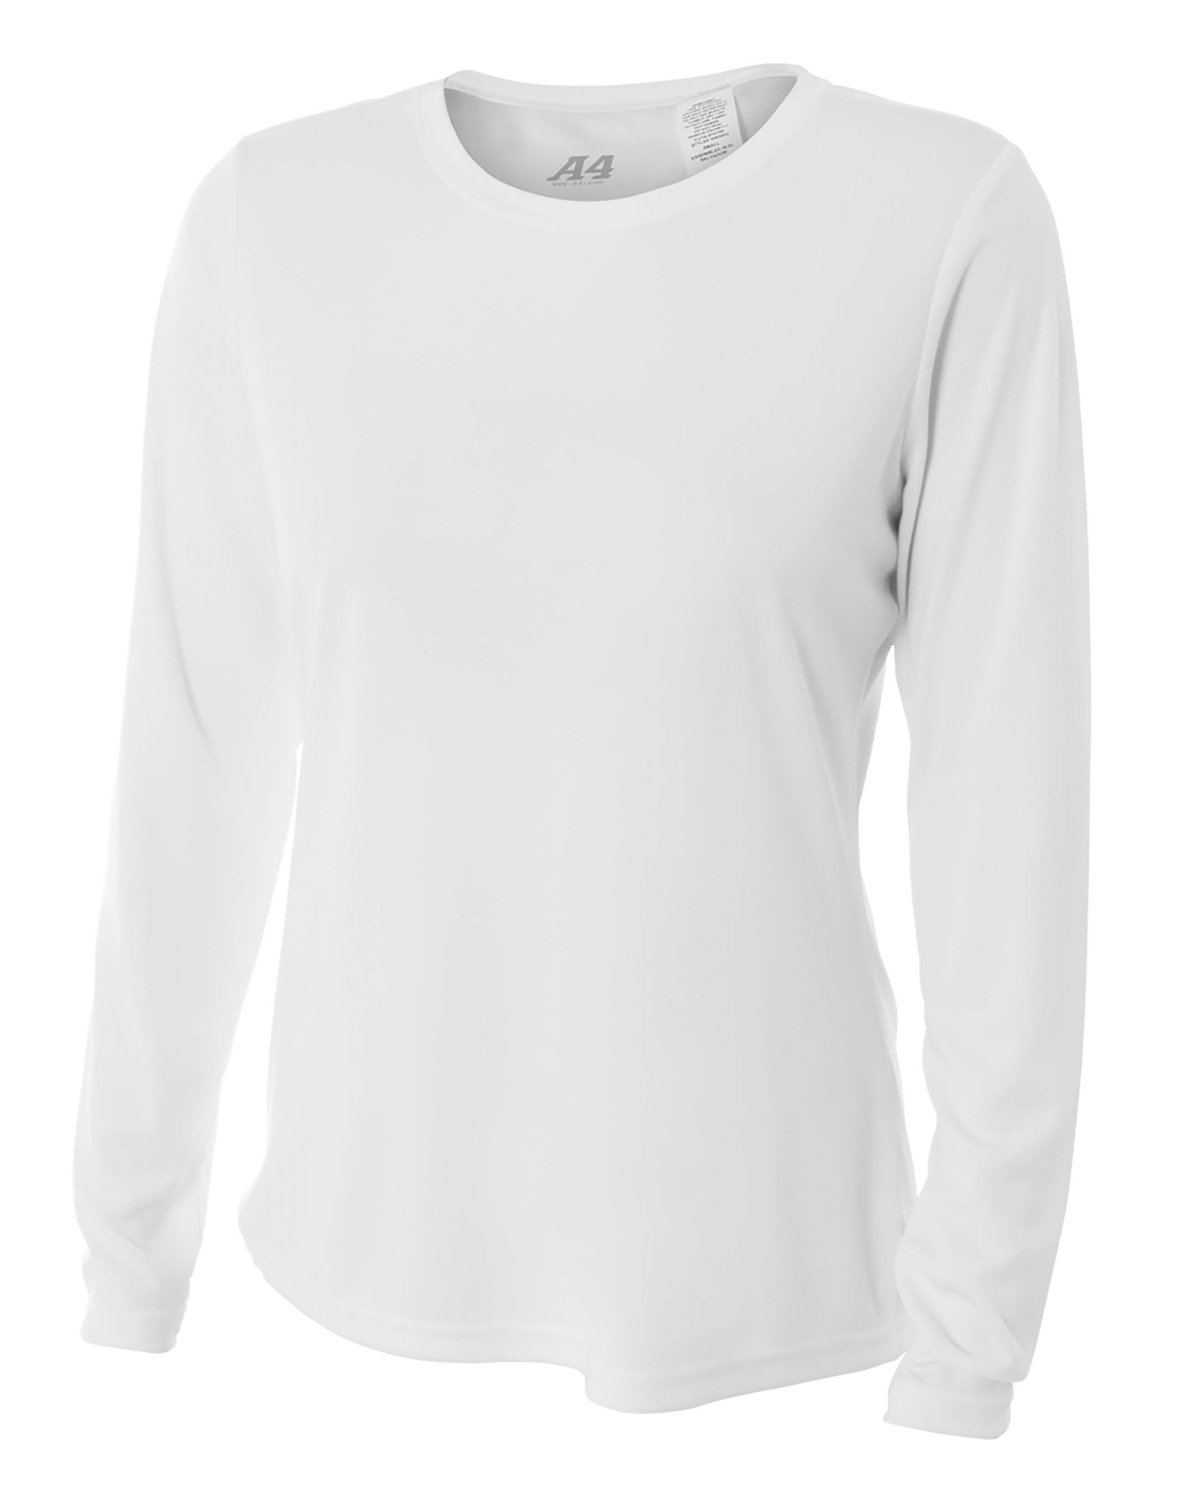 A4 Ladies' Long Sleeve Cooling Performance Crew Shirt WHITE